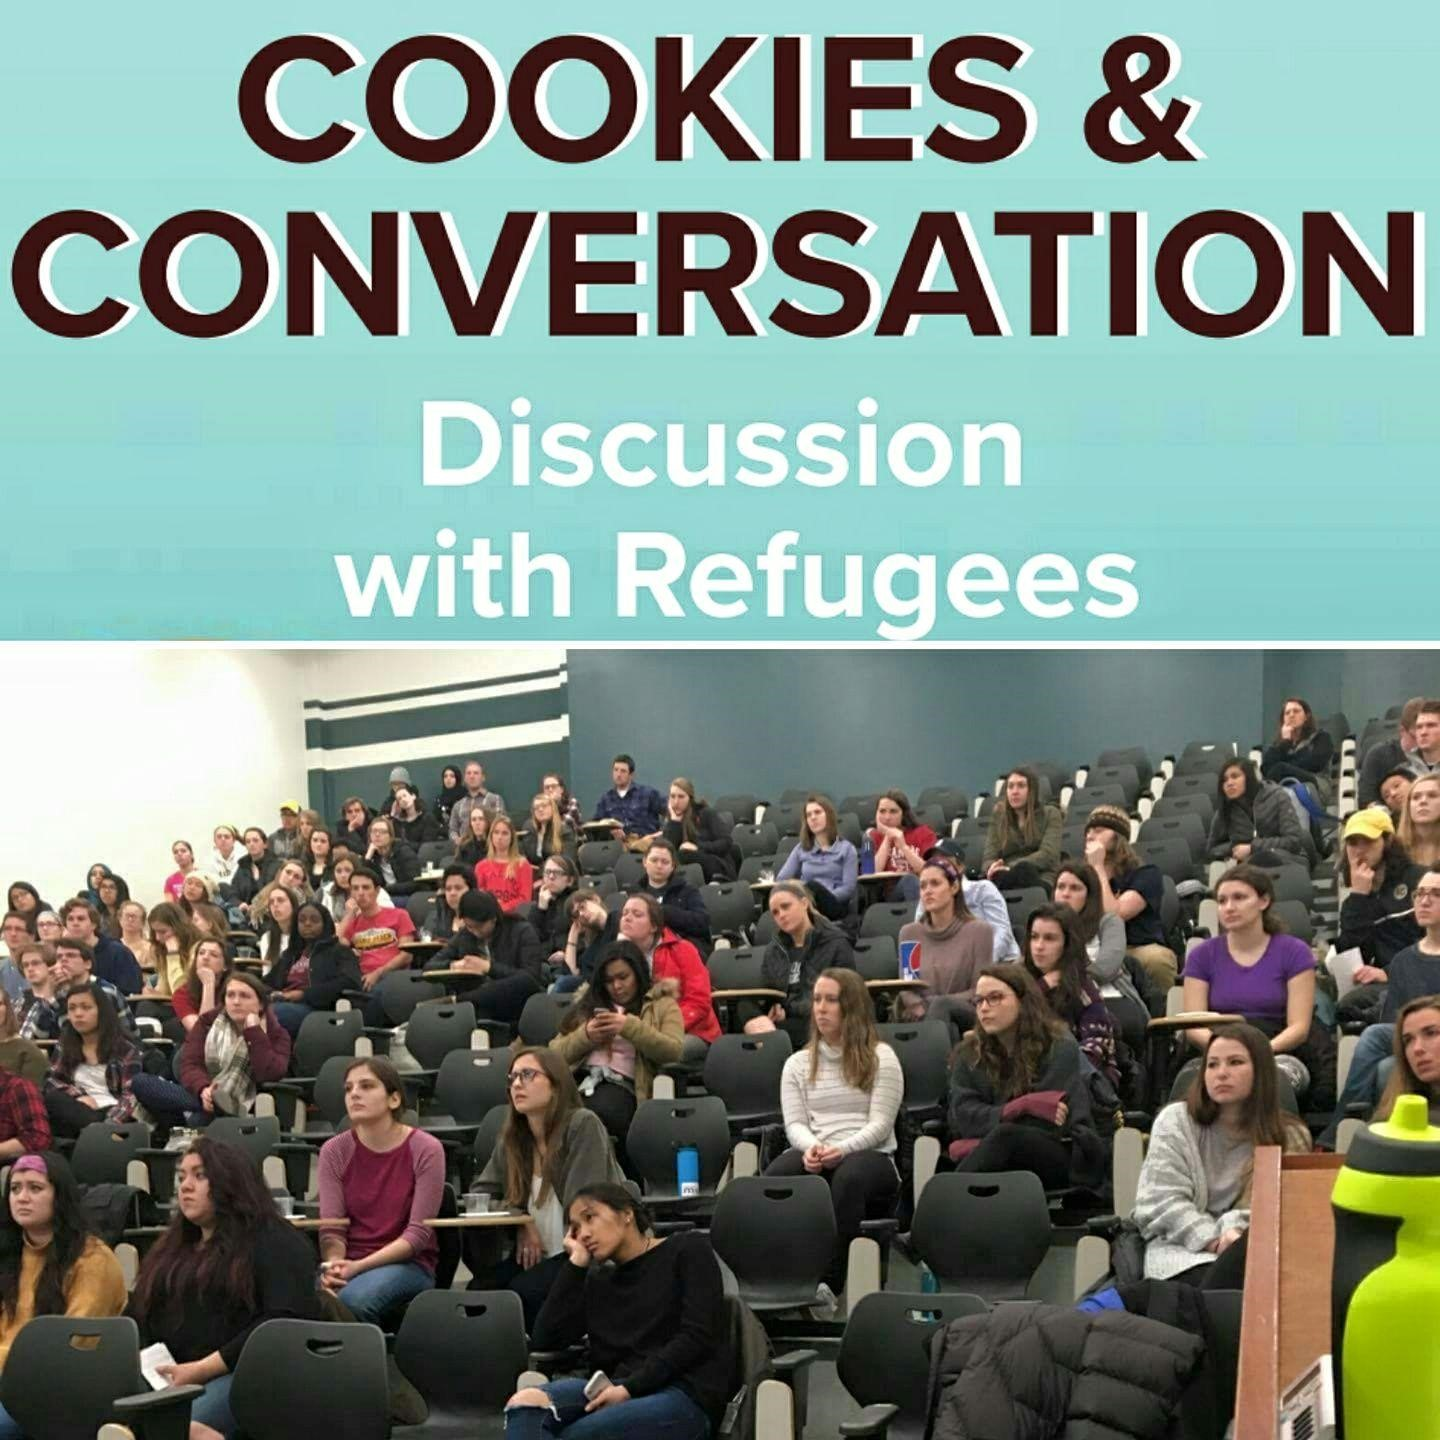 """Cookies and Conversation discussion with refugees"" poster with students in an auditorium"